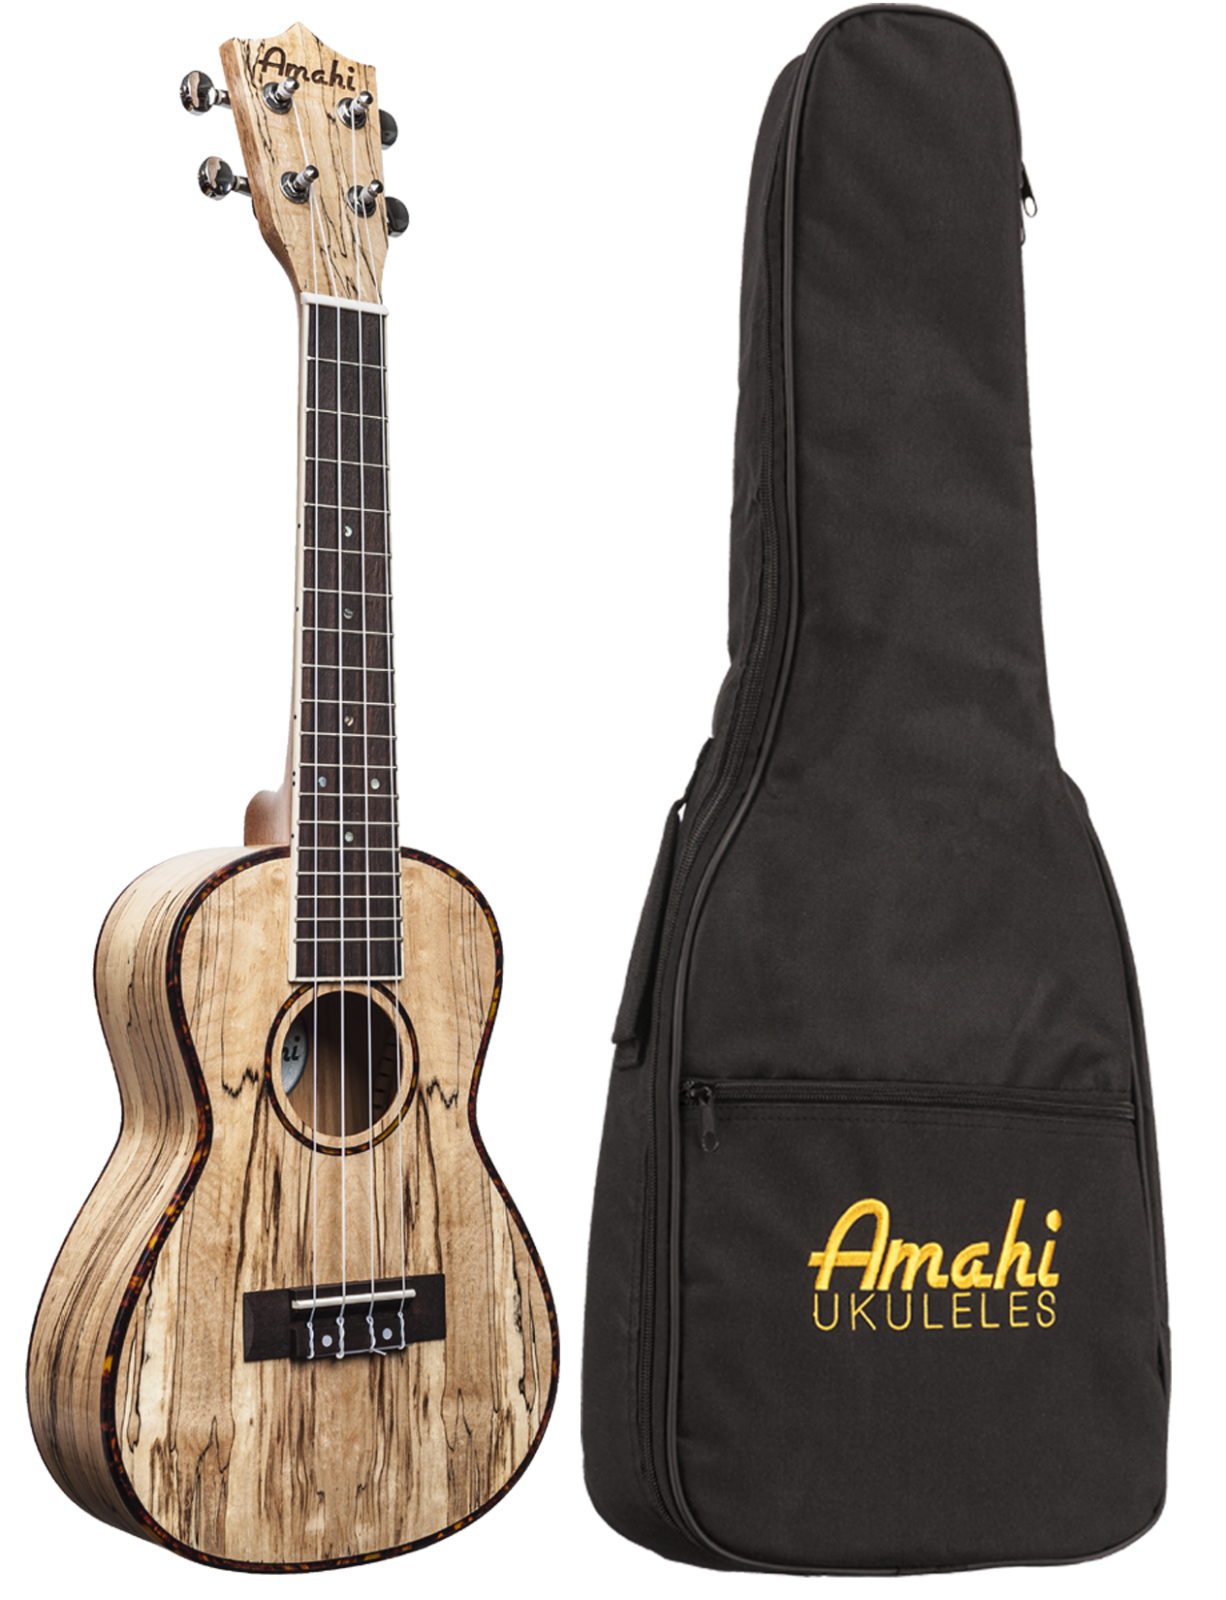 Amahi UK770 Spalted Maple Wood Ukulele